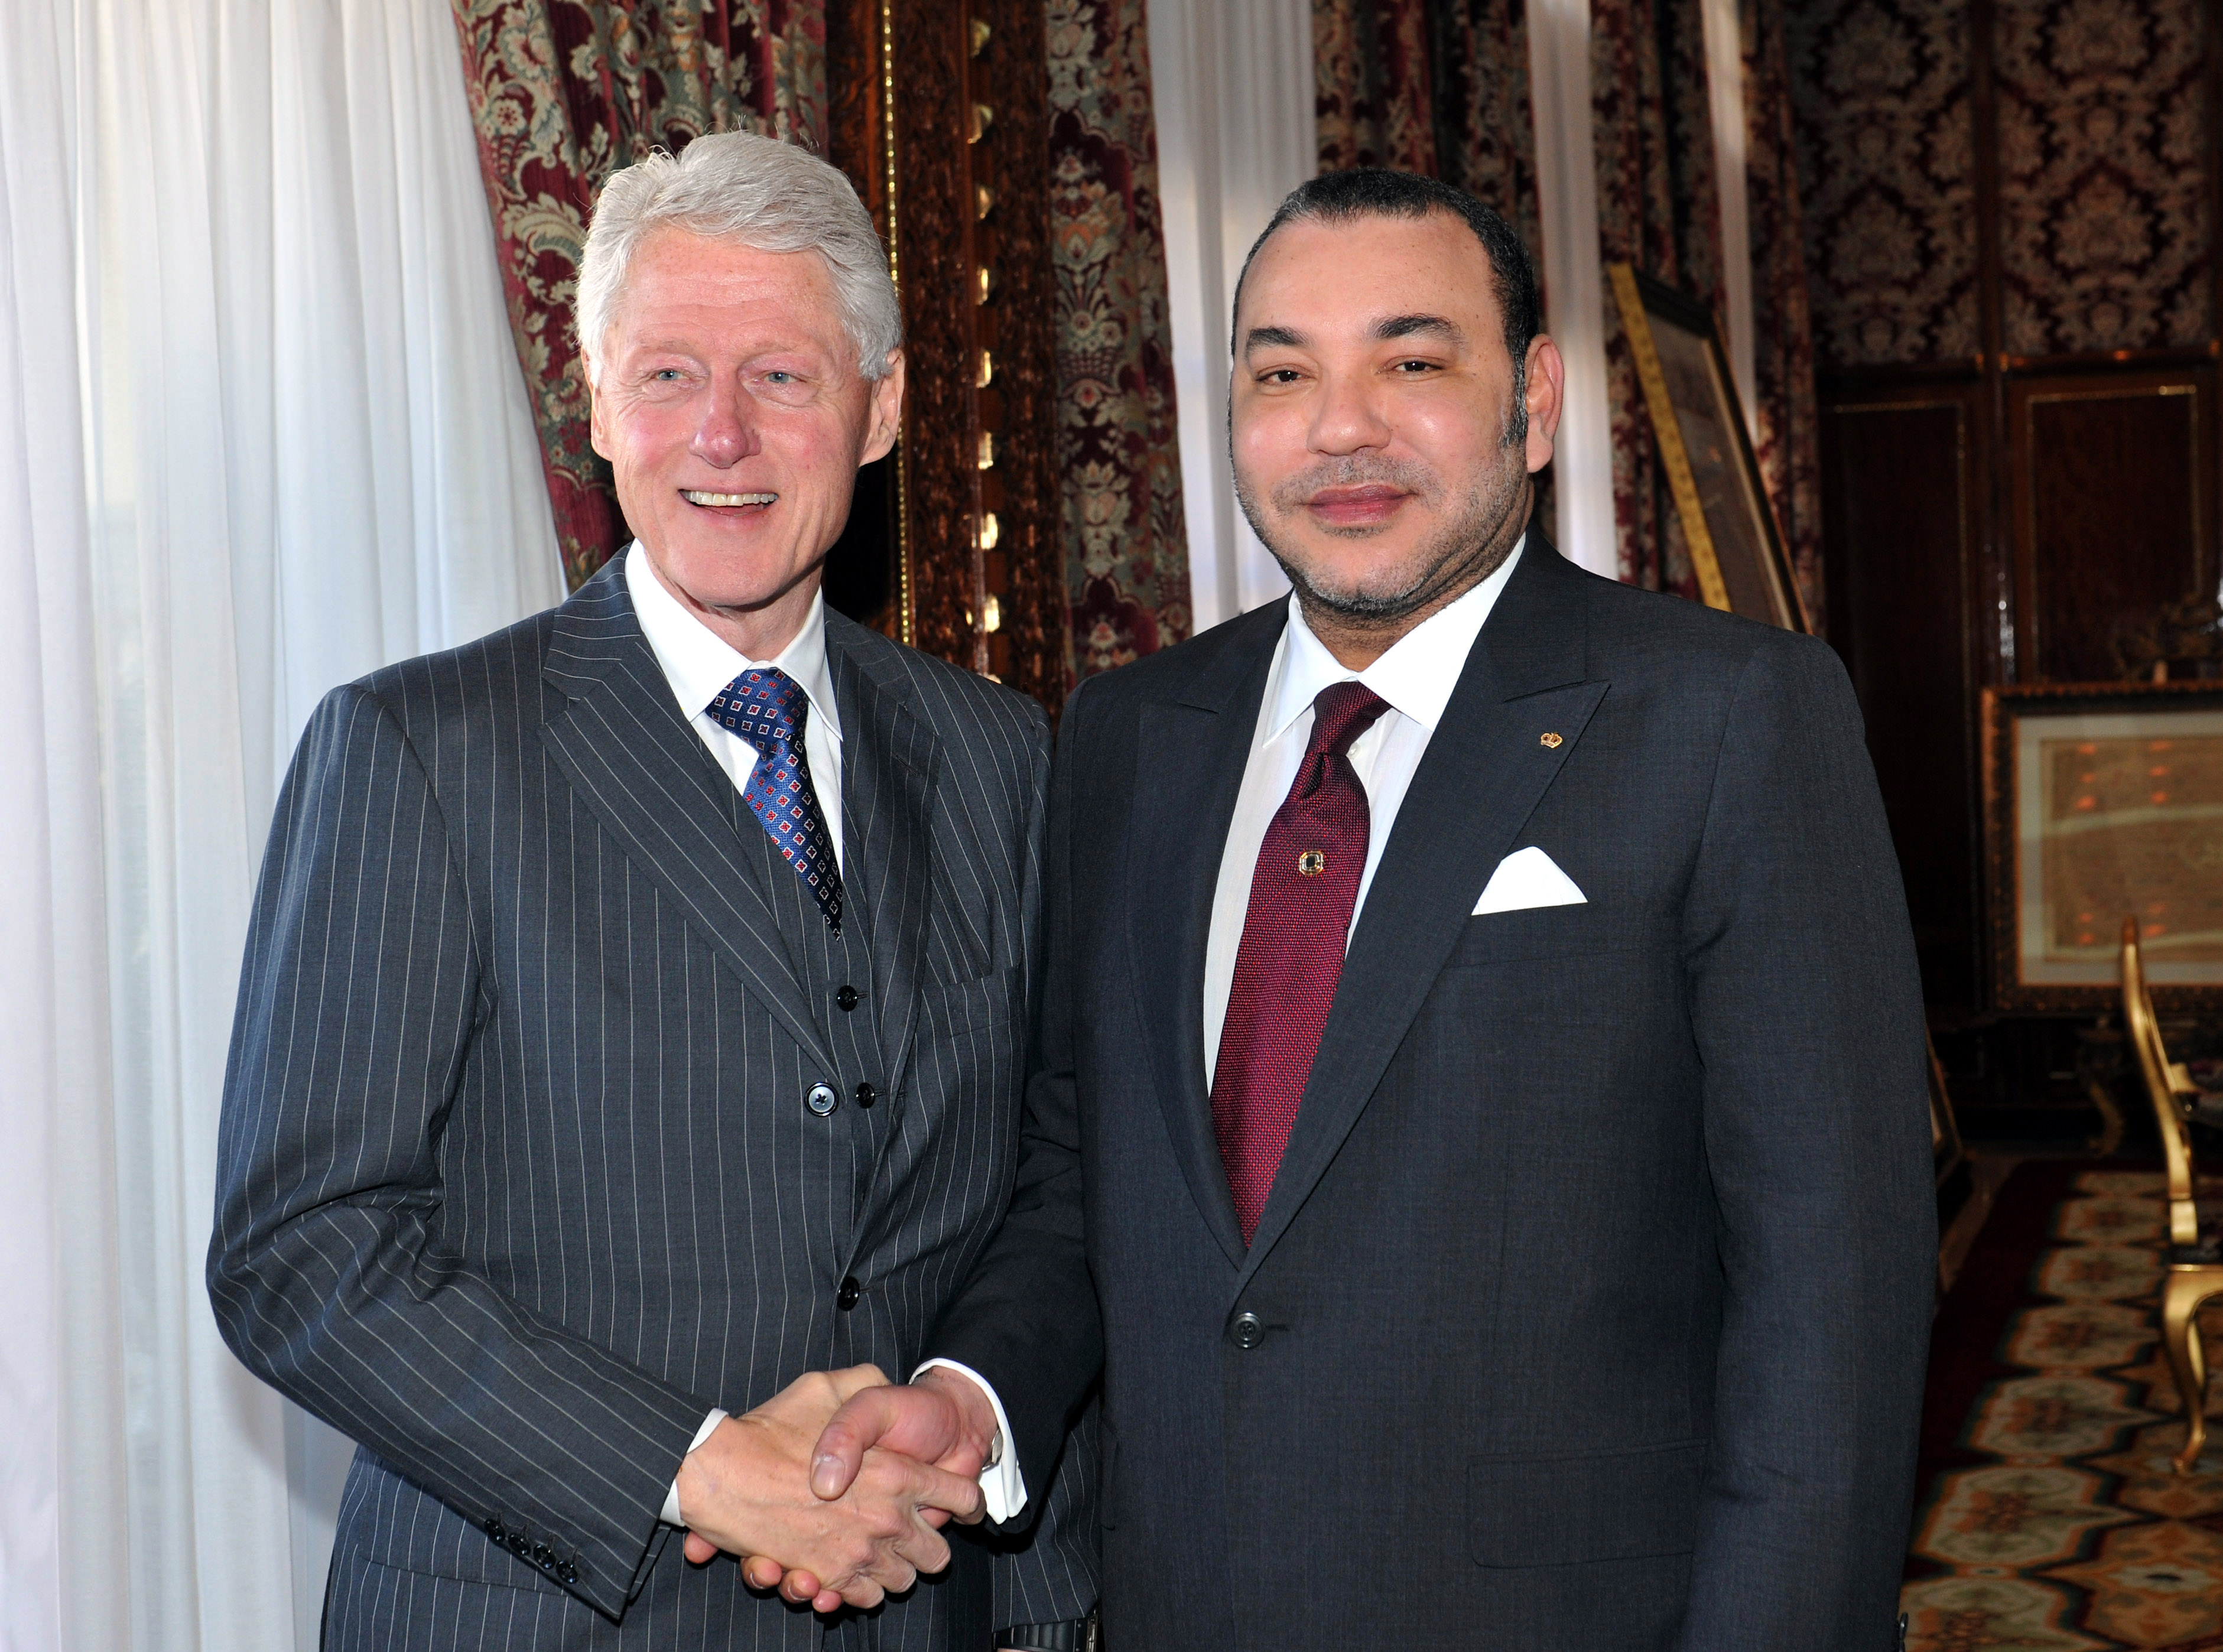 Rabat  -  HM King Mohammed VI received, on Sunday in the Rabat royal palace, former US president Bill Clinton who is on a visit to Morocco.